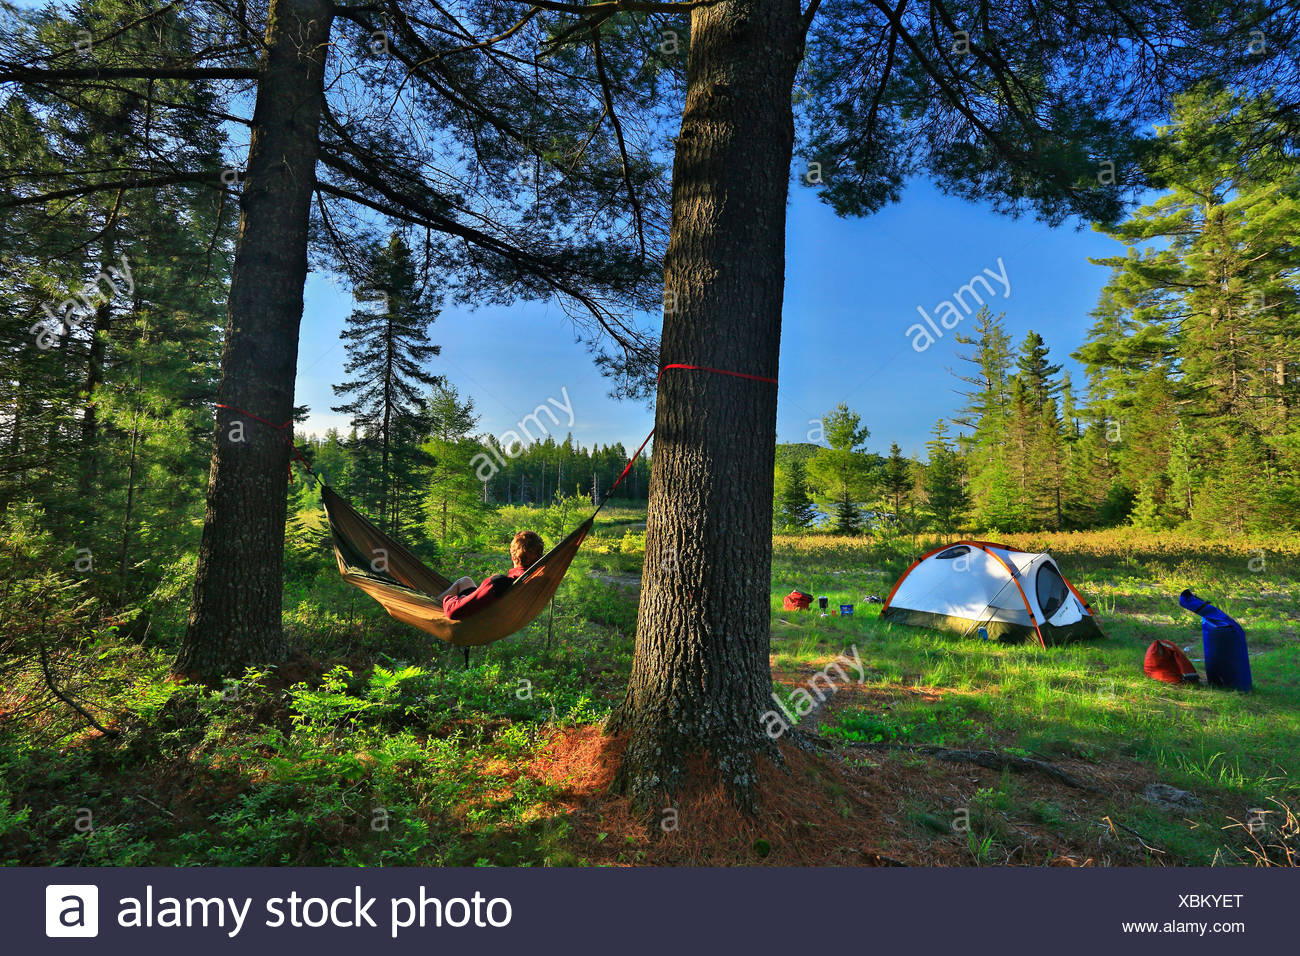 Camper Lounges On A Hammock Between Two Trees At Saint Regis River, New York - Stock Image